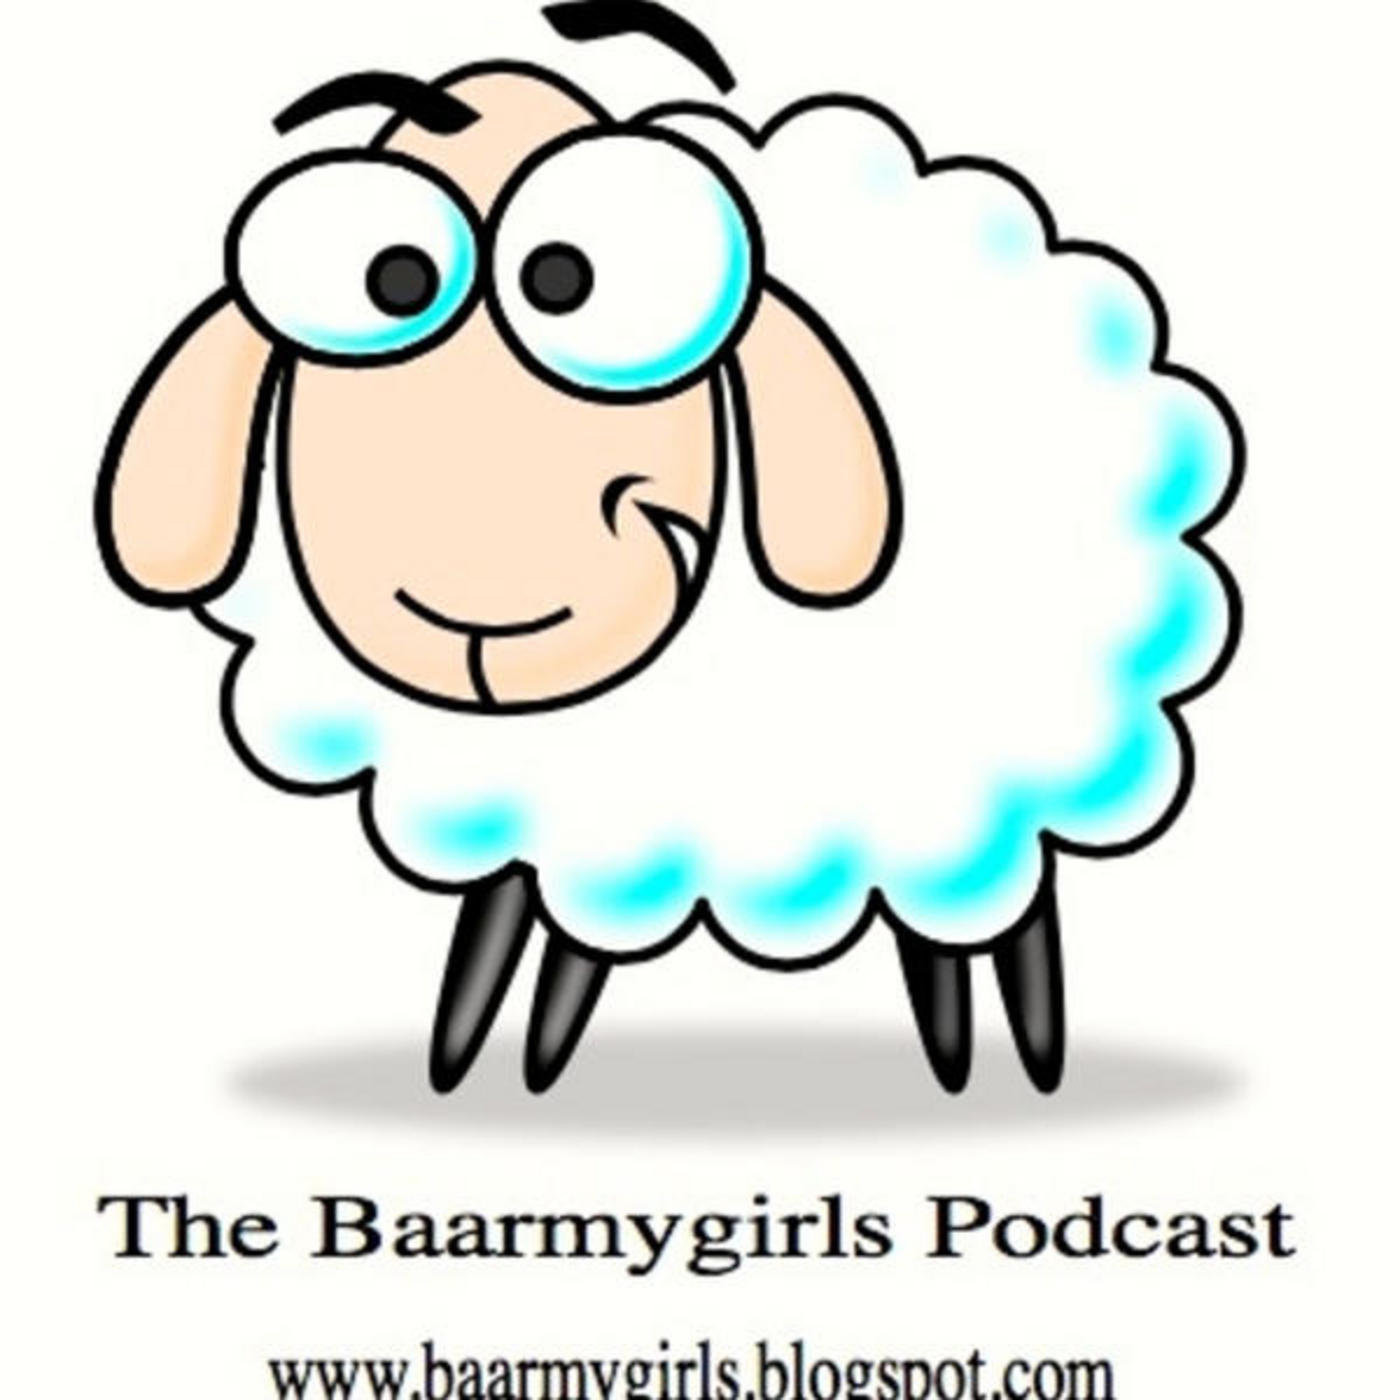 Baarmygirls Podcast Episode 14 - The one with the winner at the end!